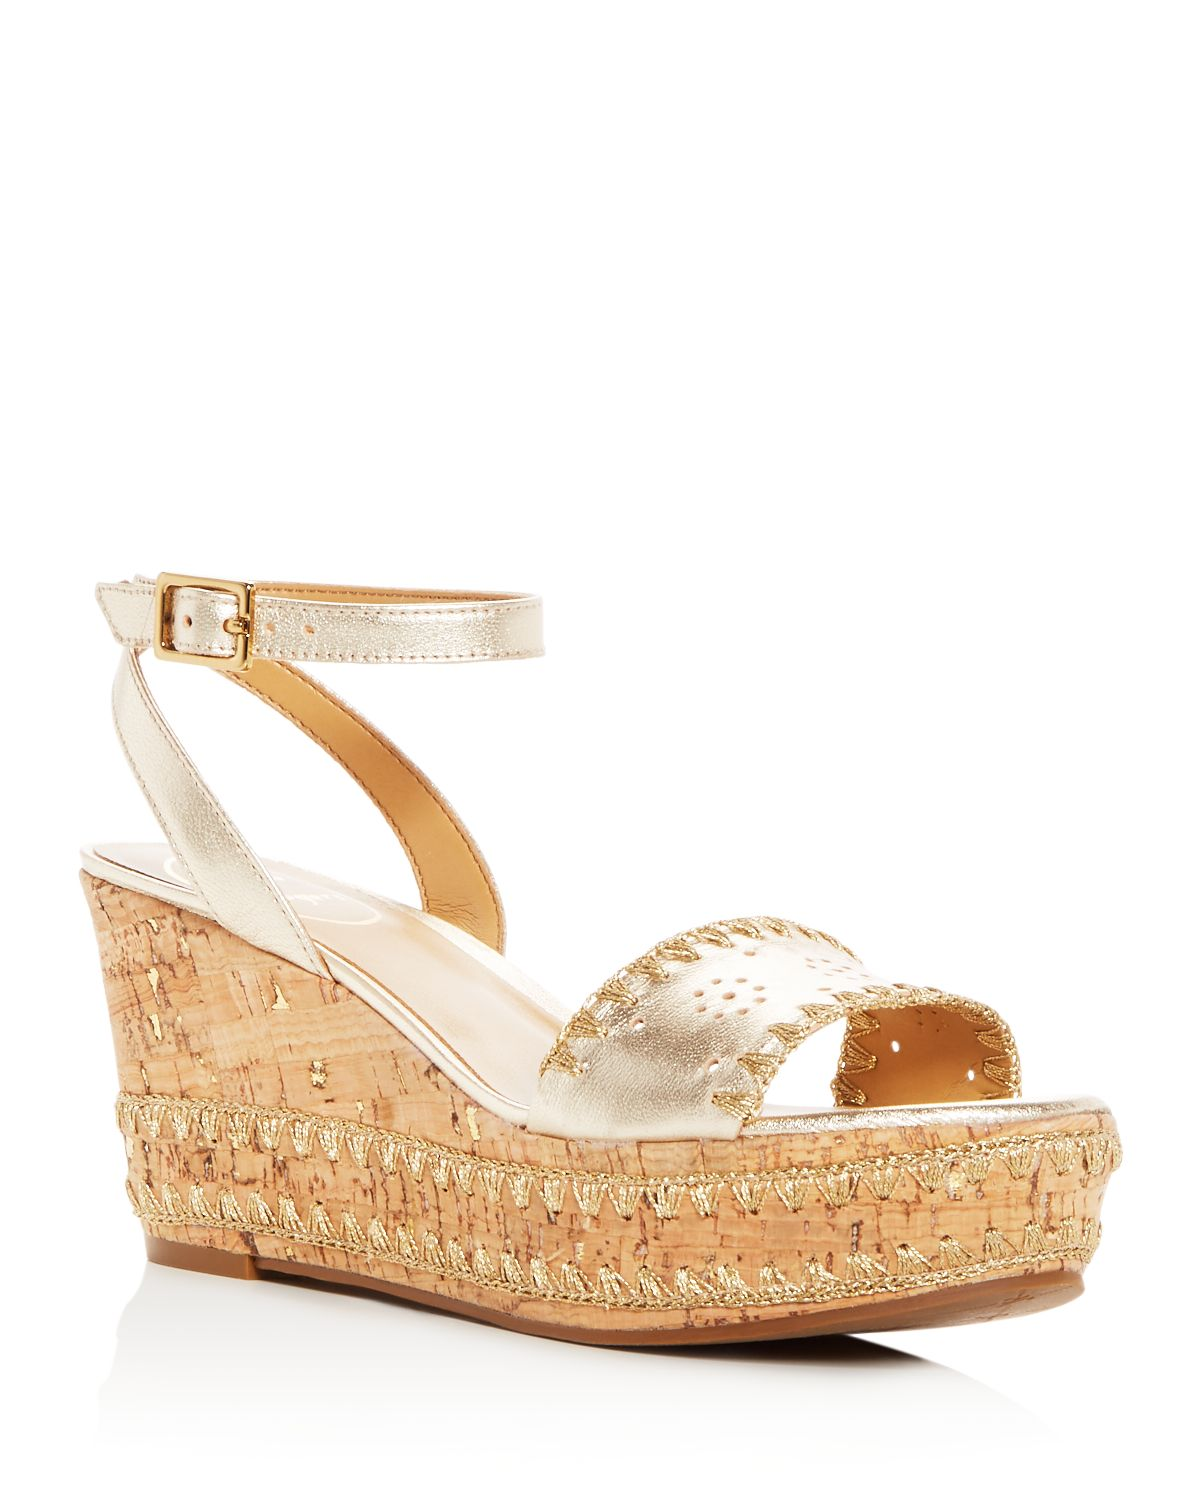 Jack Rogers Women's Lennon Leather & Cork Wedge Platform Sandals